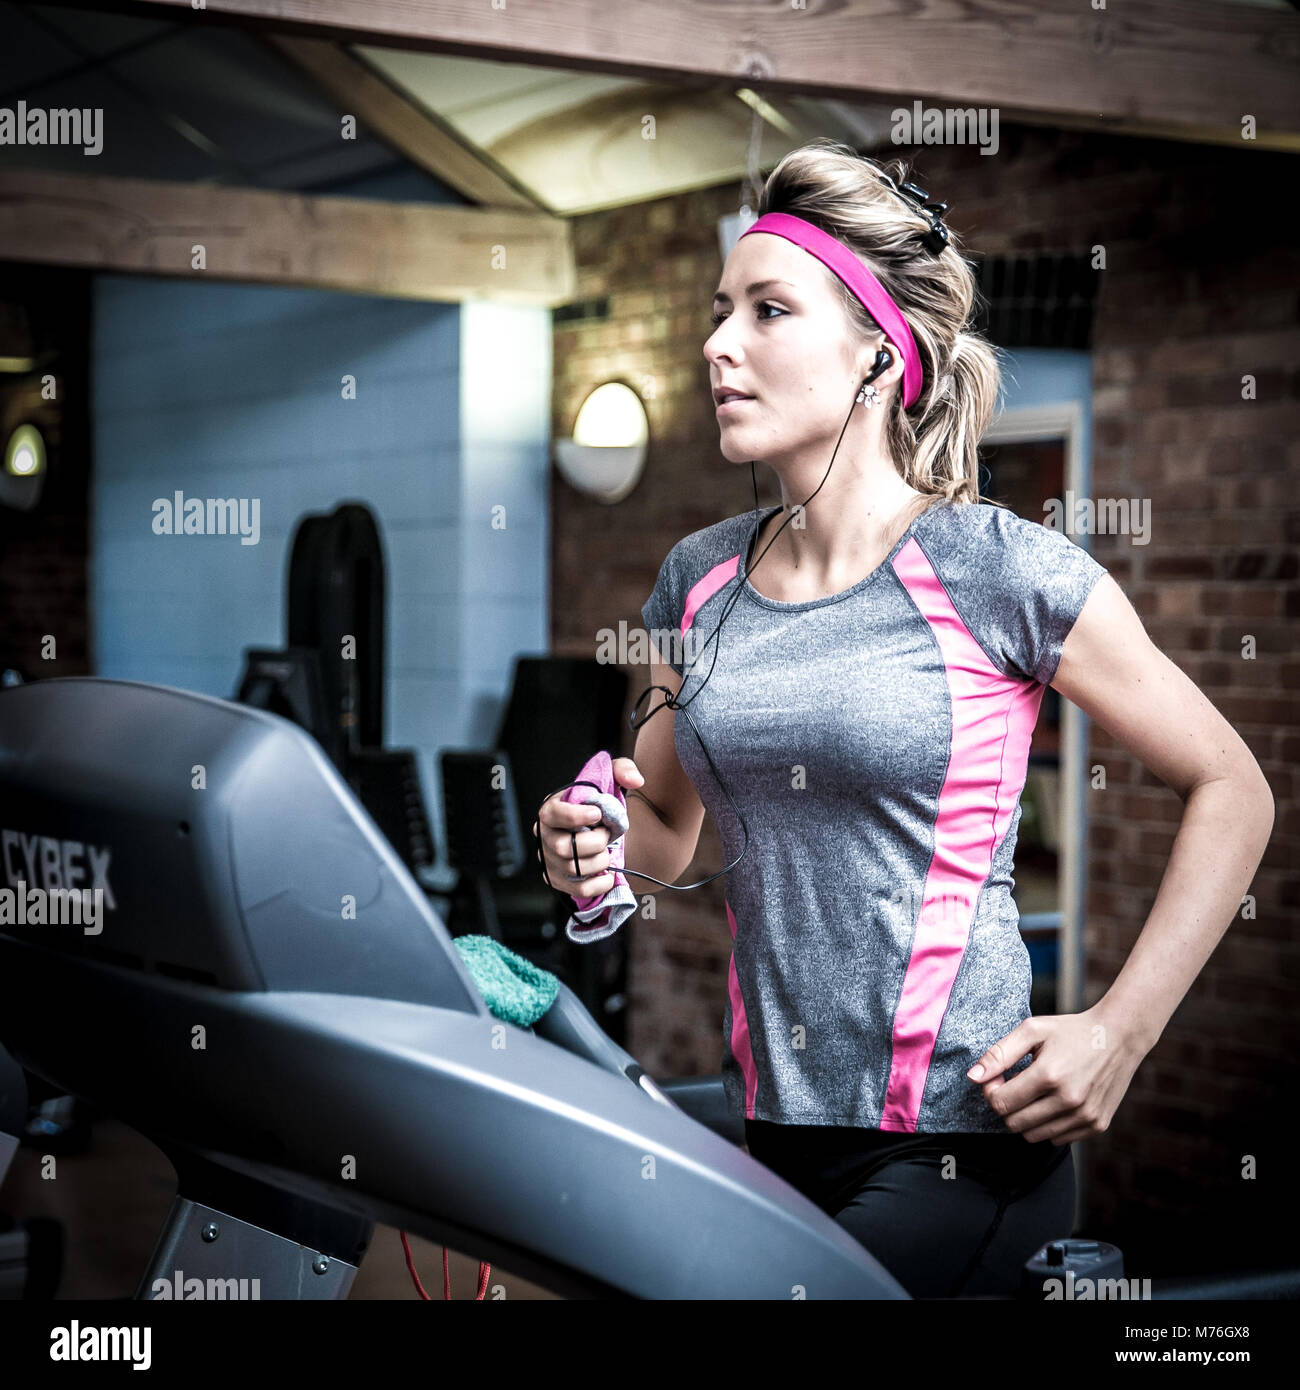 Girl on a treadmill working out in the gym, - Stock Image